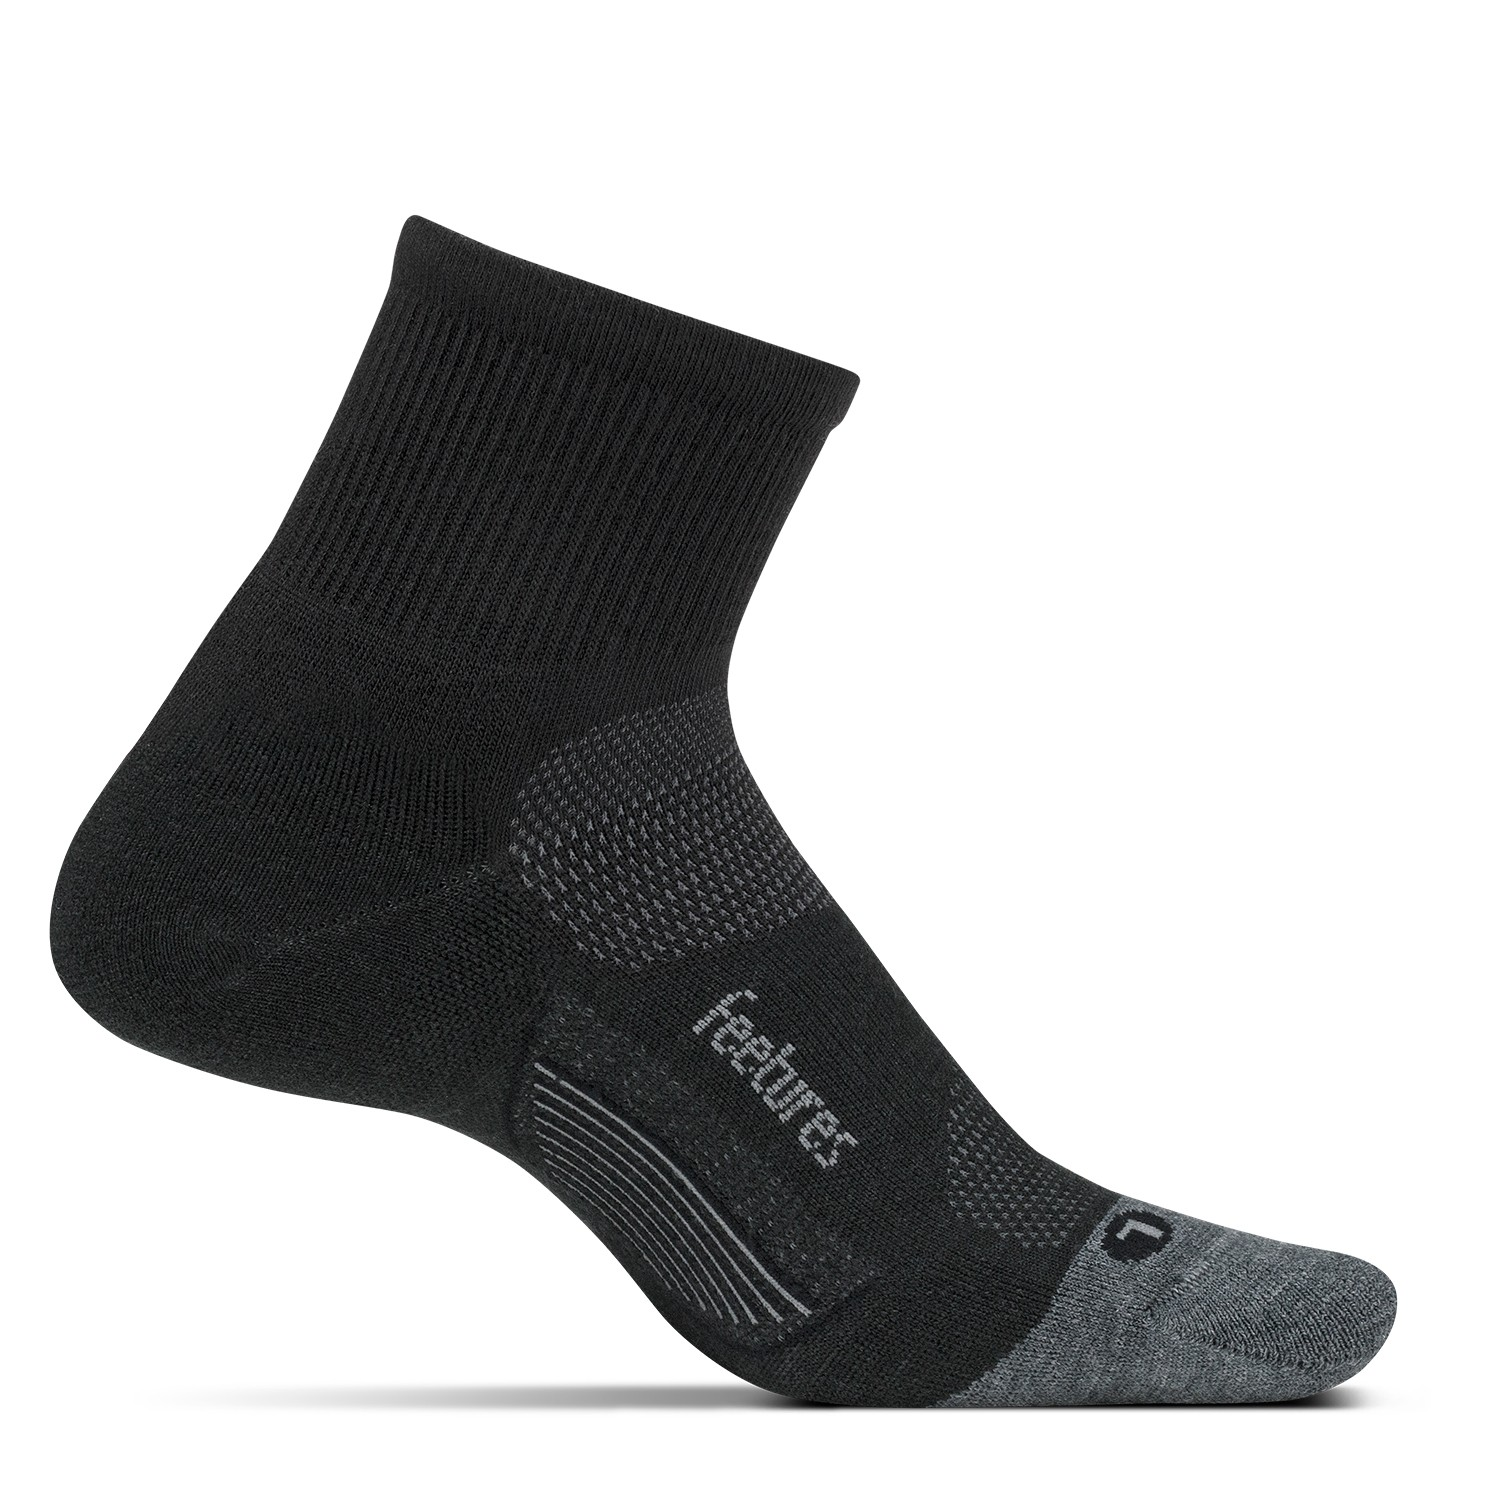 Feetures Unisex Merino 10 Ultra Light Qtr Sock